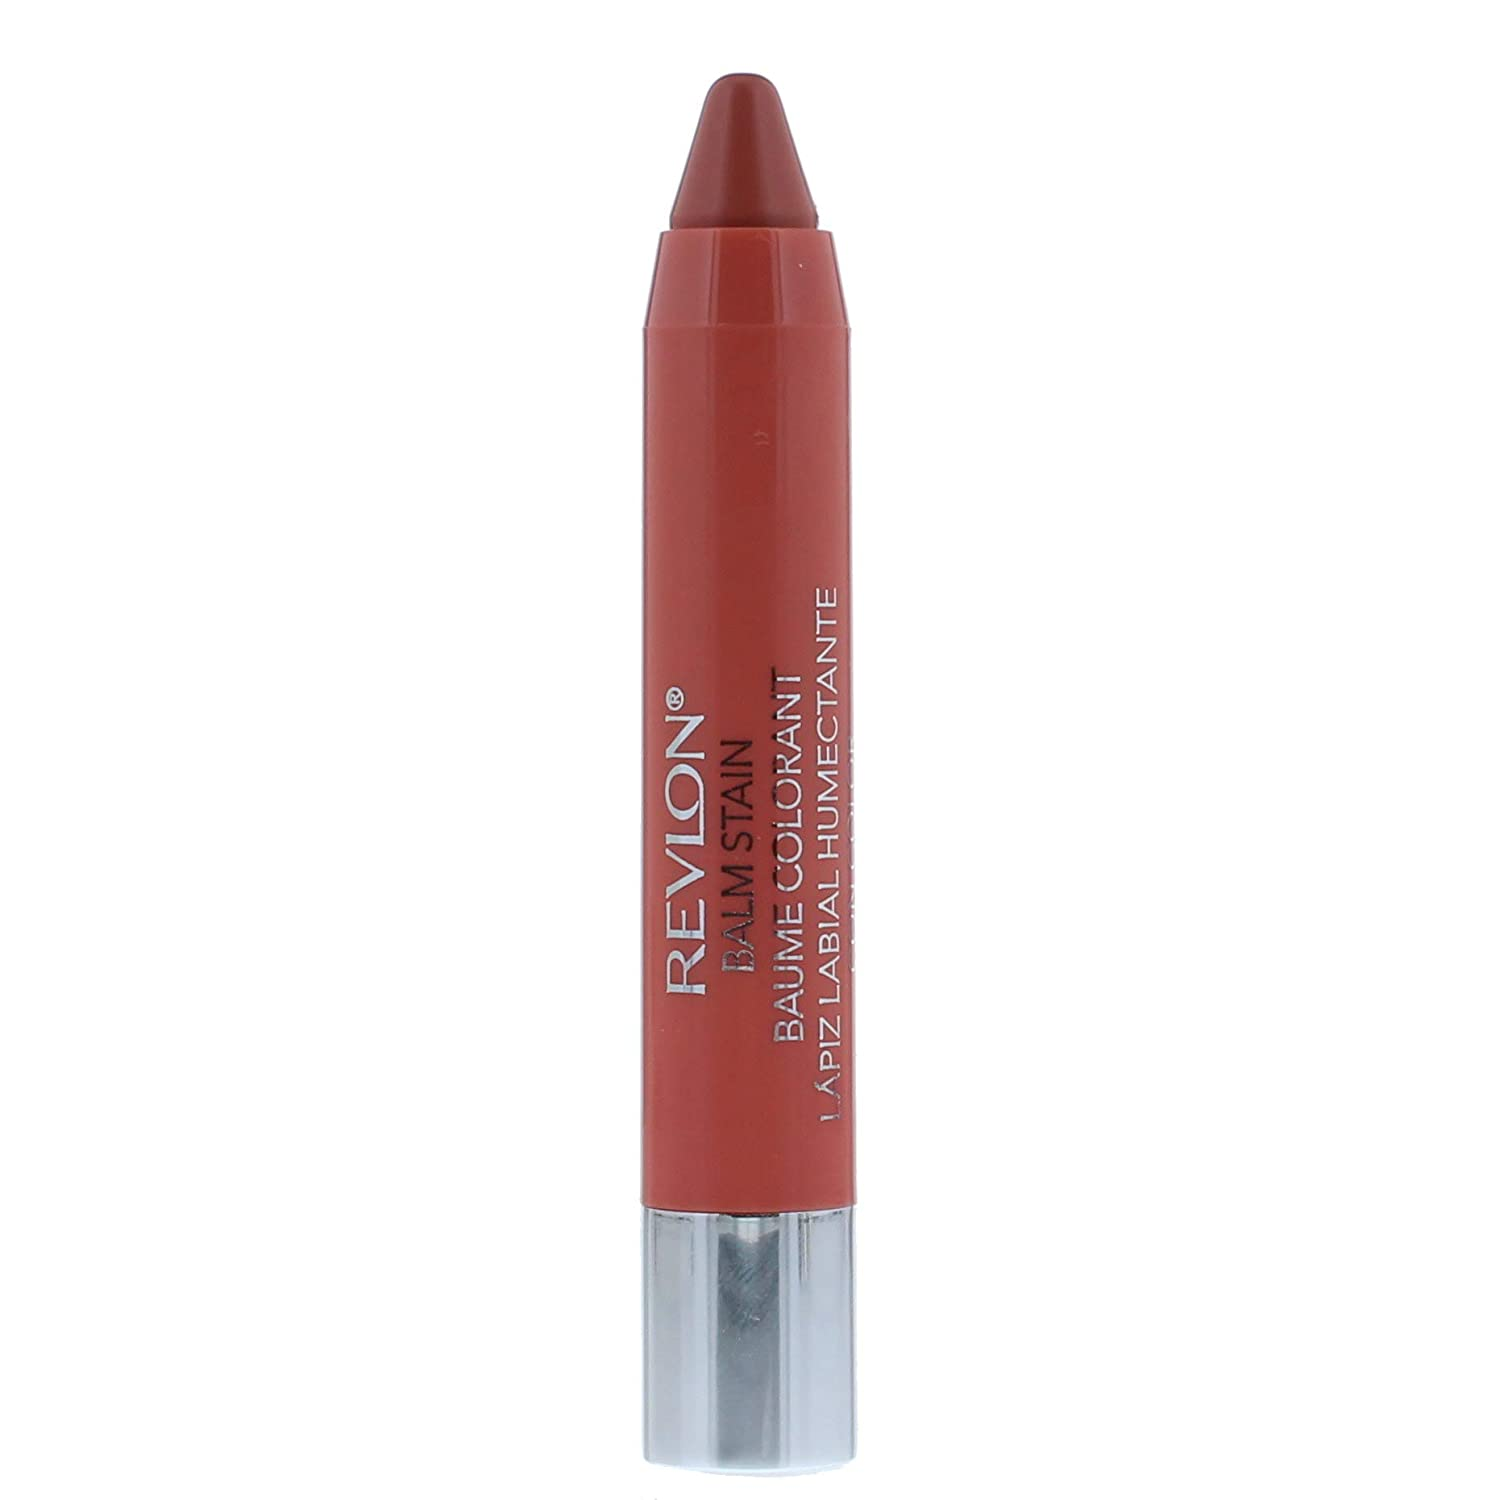 Colorburst Balm Stain by Revlon 065 Irresistible